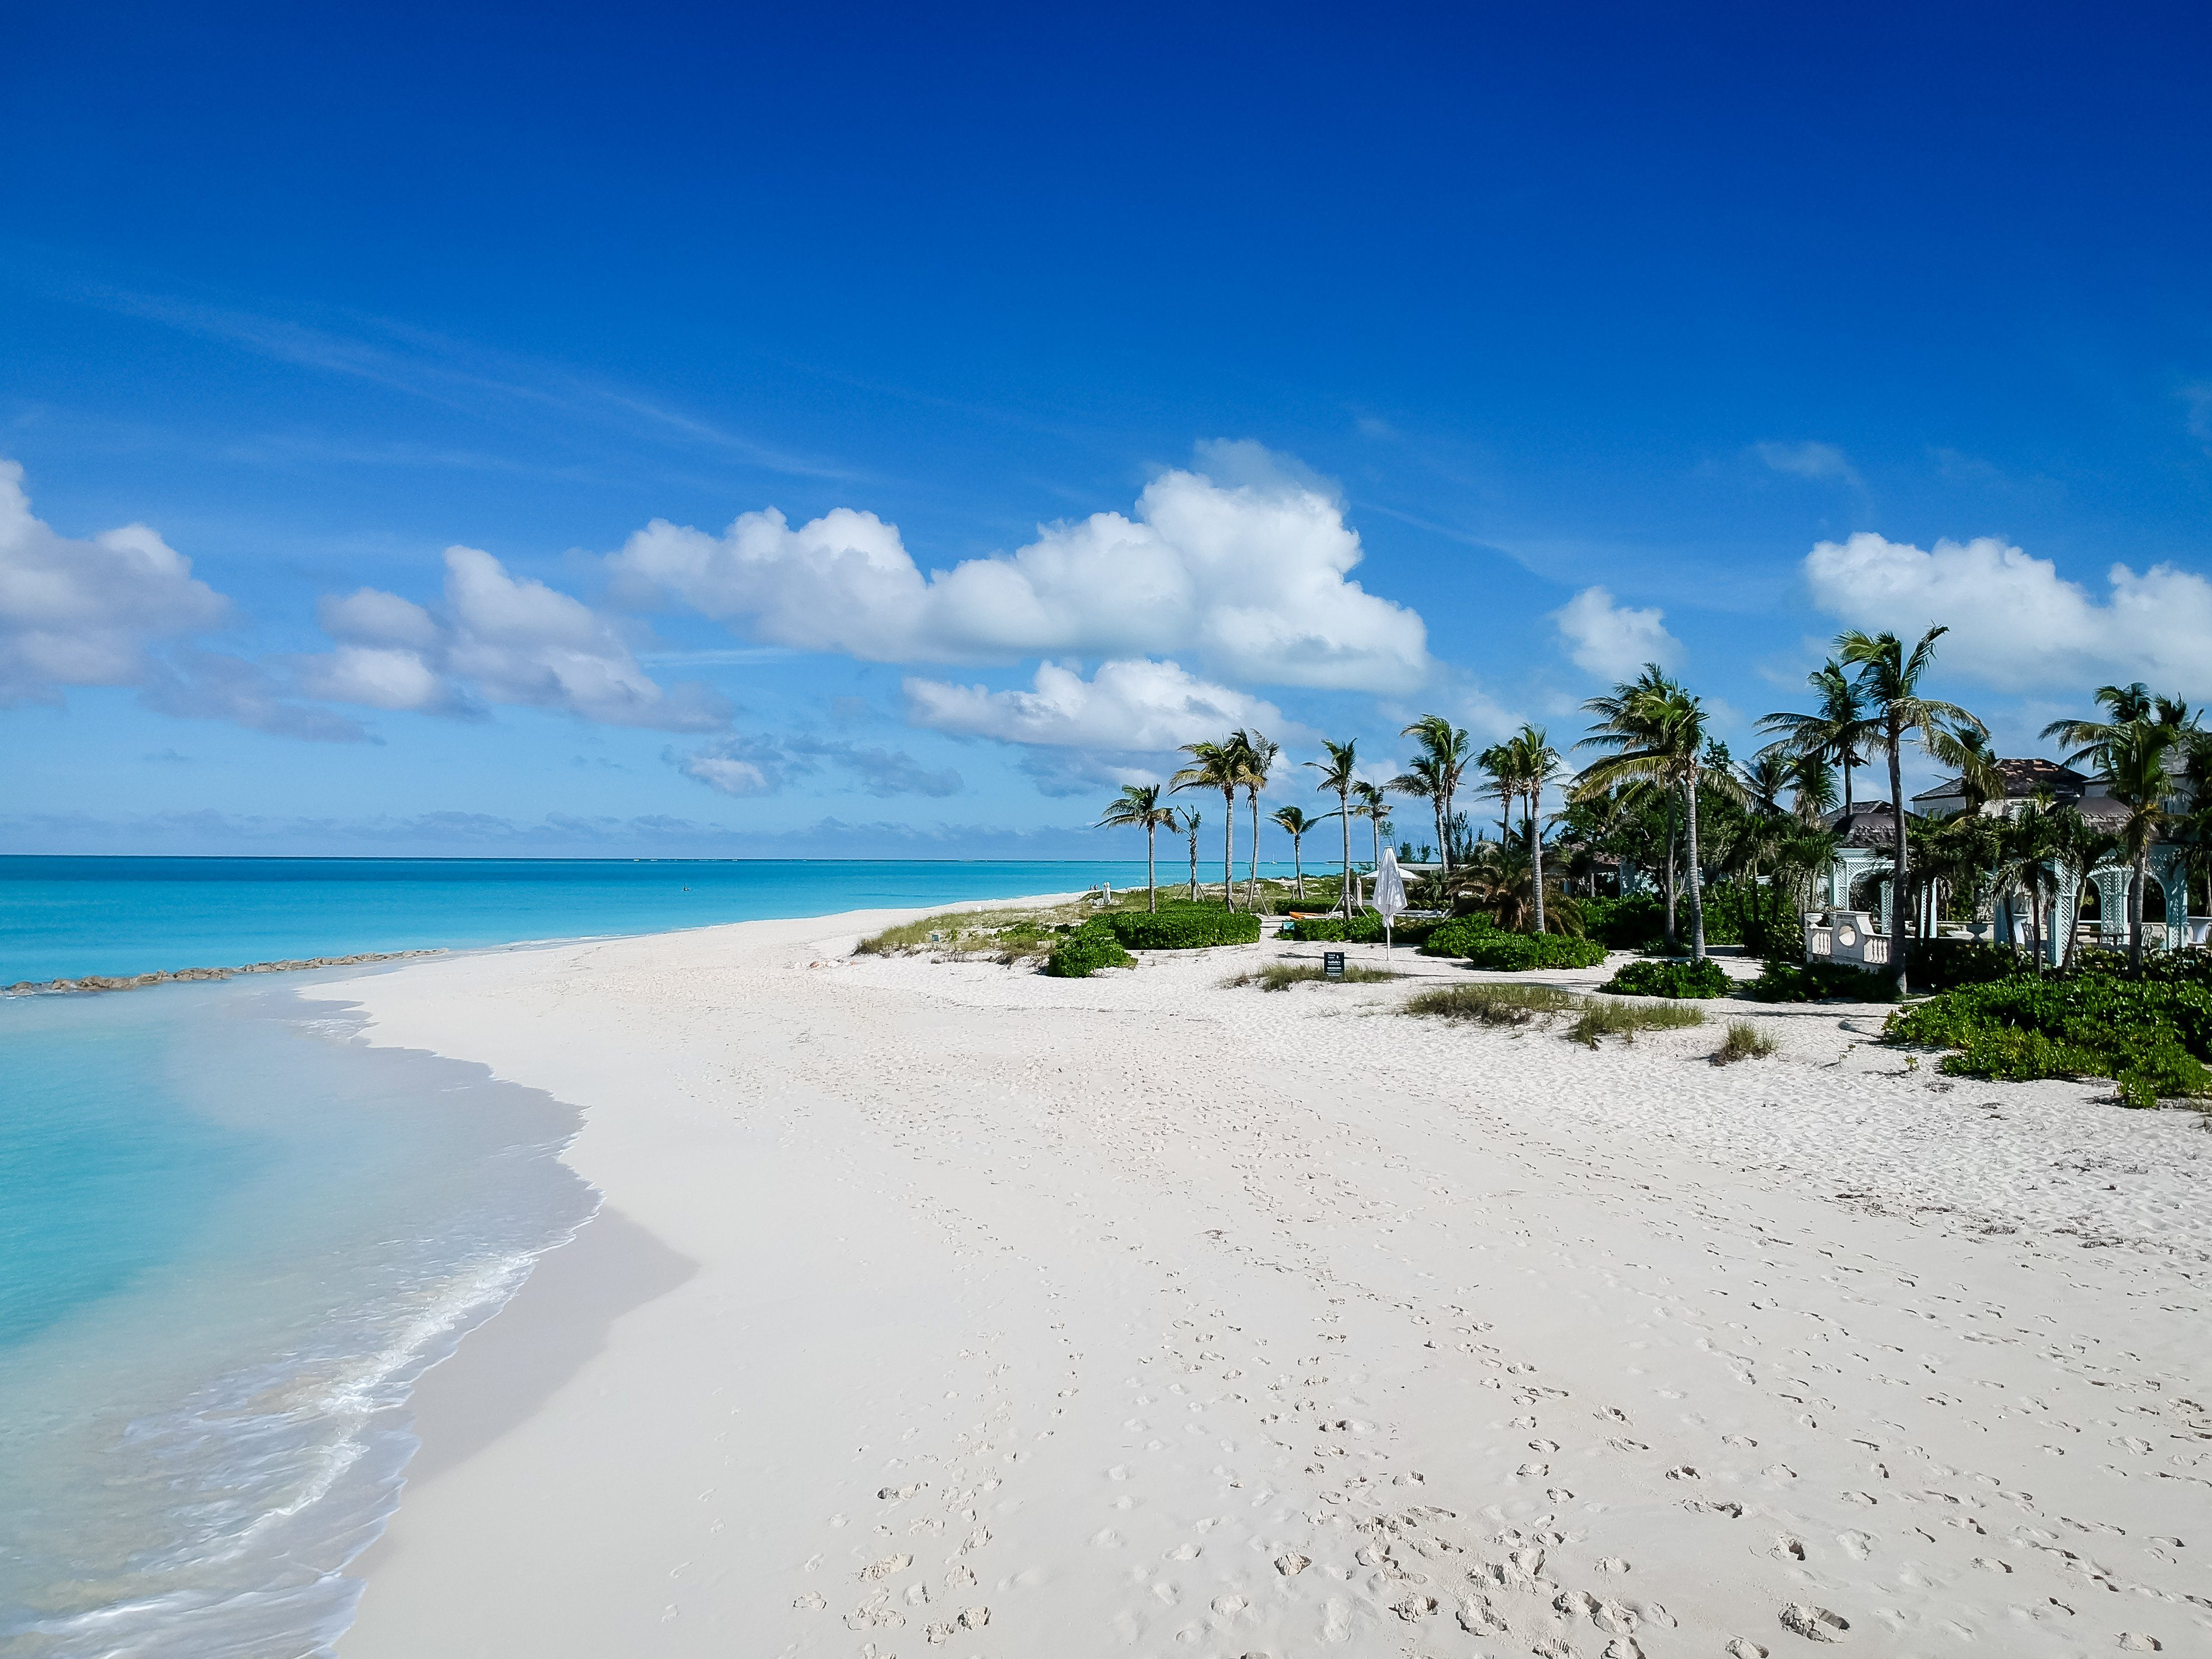 Best beaches in the world - Grace Bay